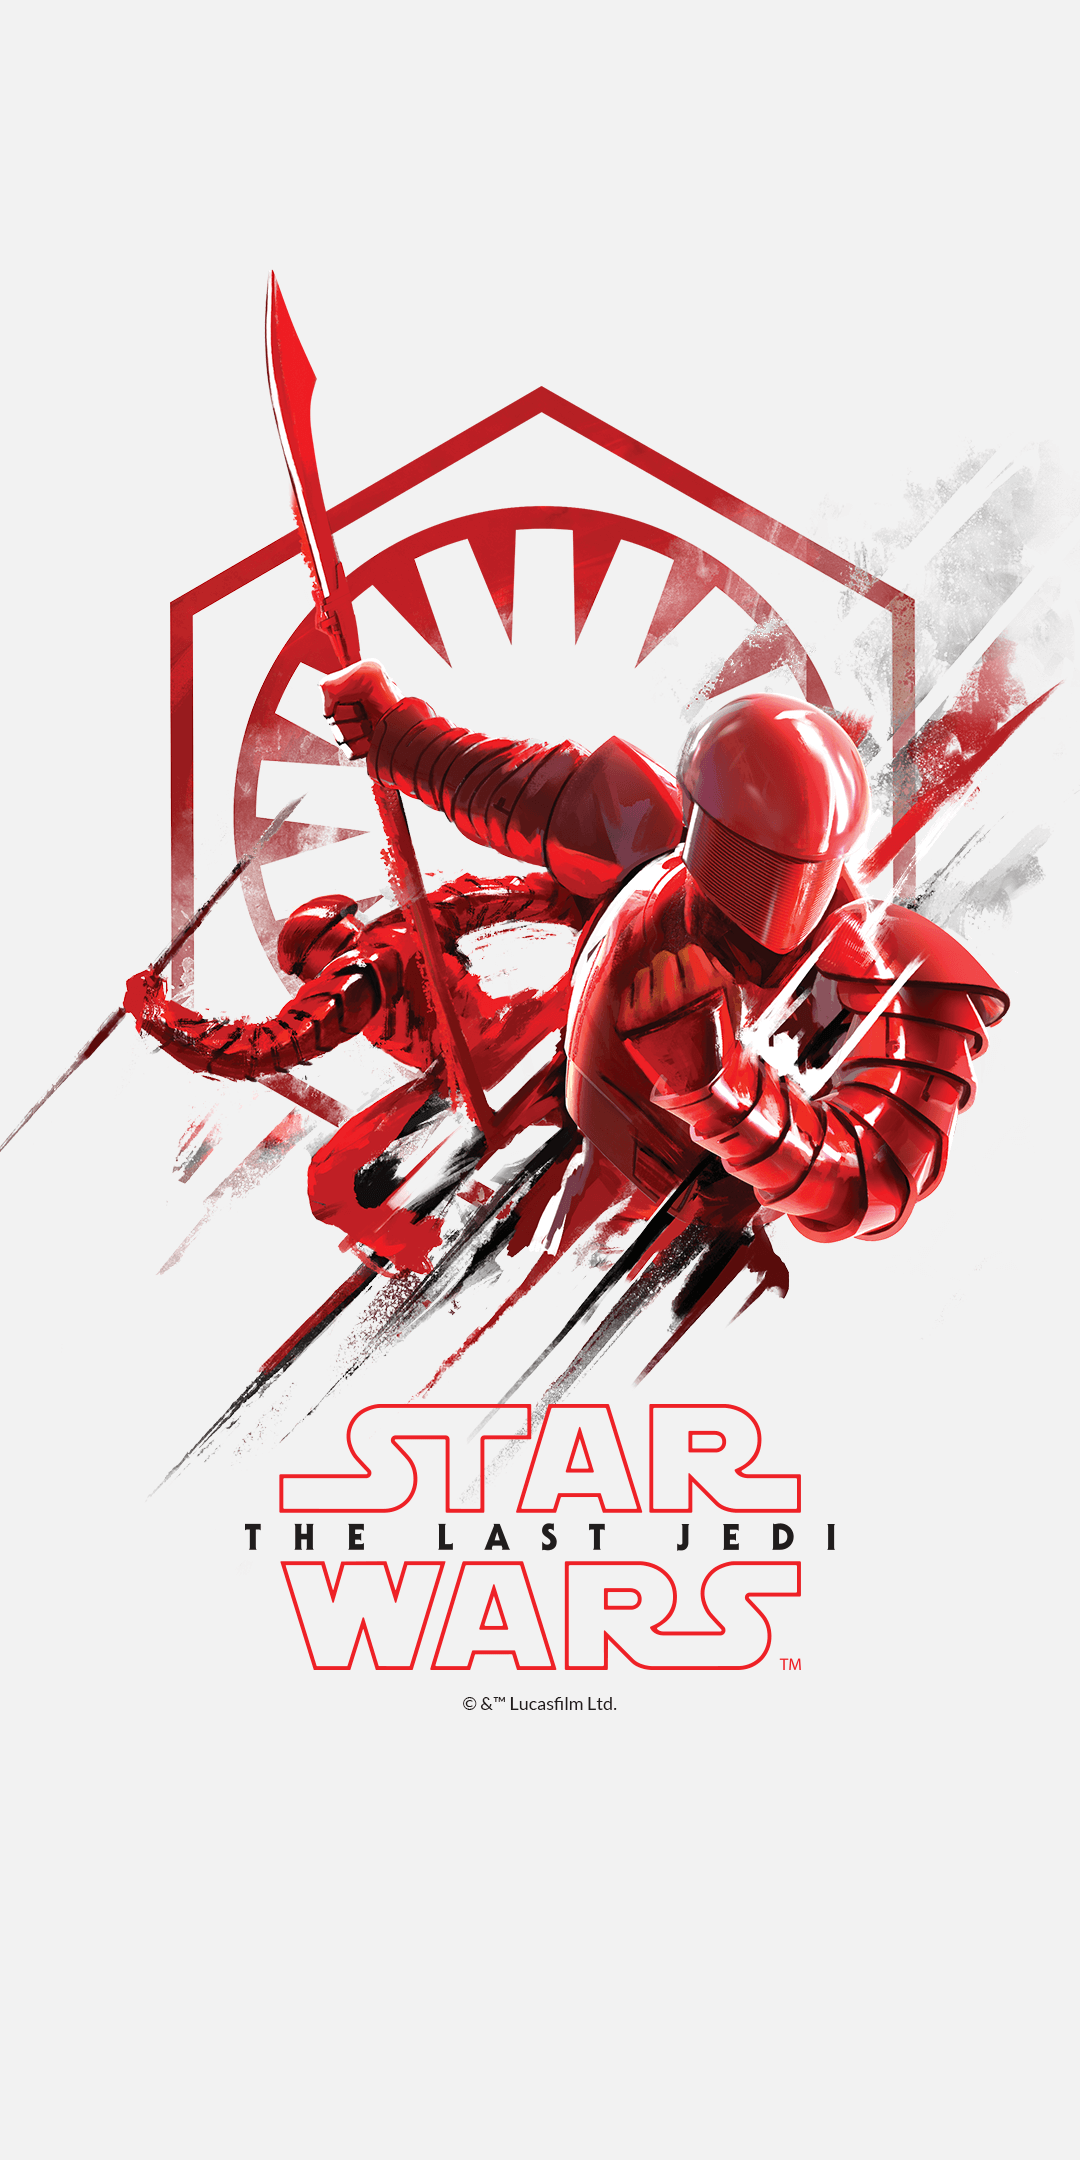 Get All The Star Wars The Last Jedi Wallpapers From The Special Edition Oneplus 5t Download Zvezdnye Vojny Vojna Papka